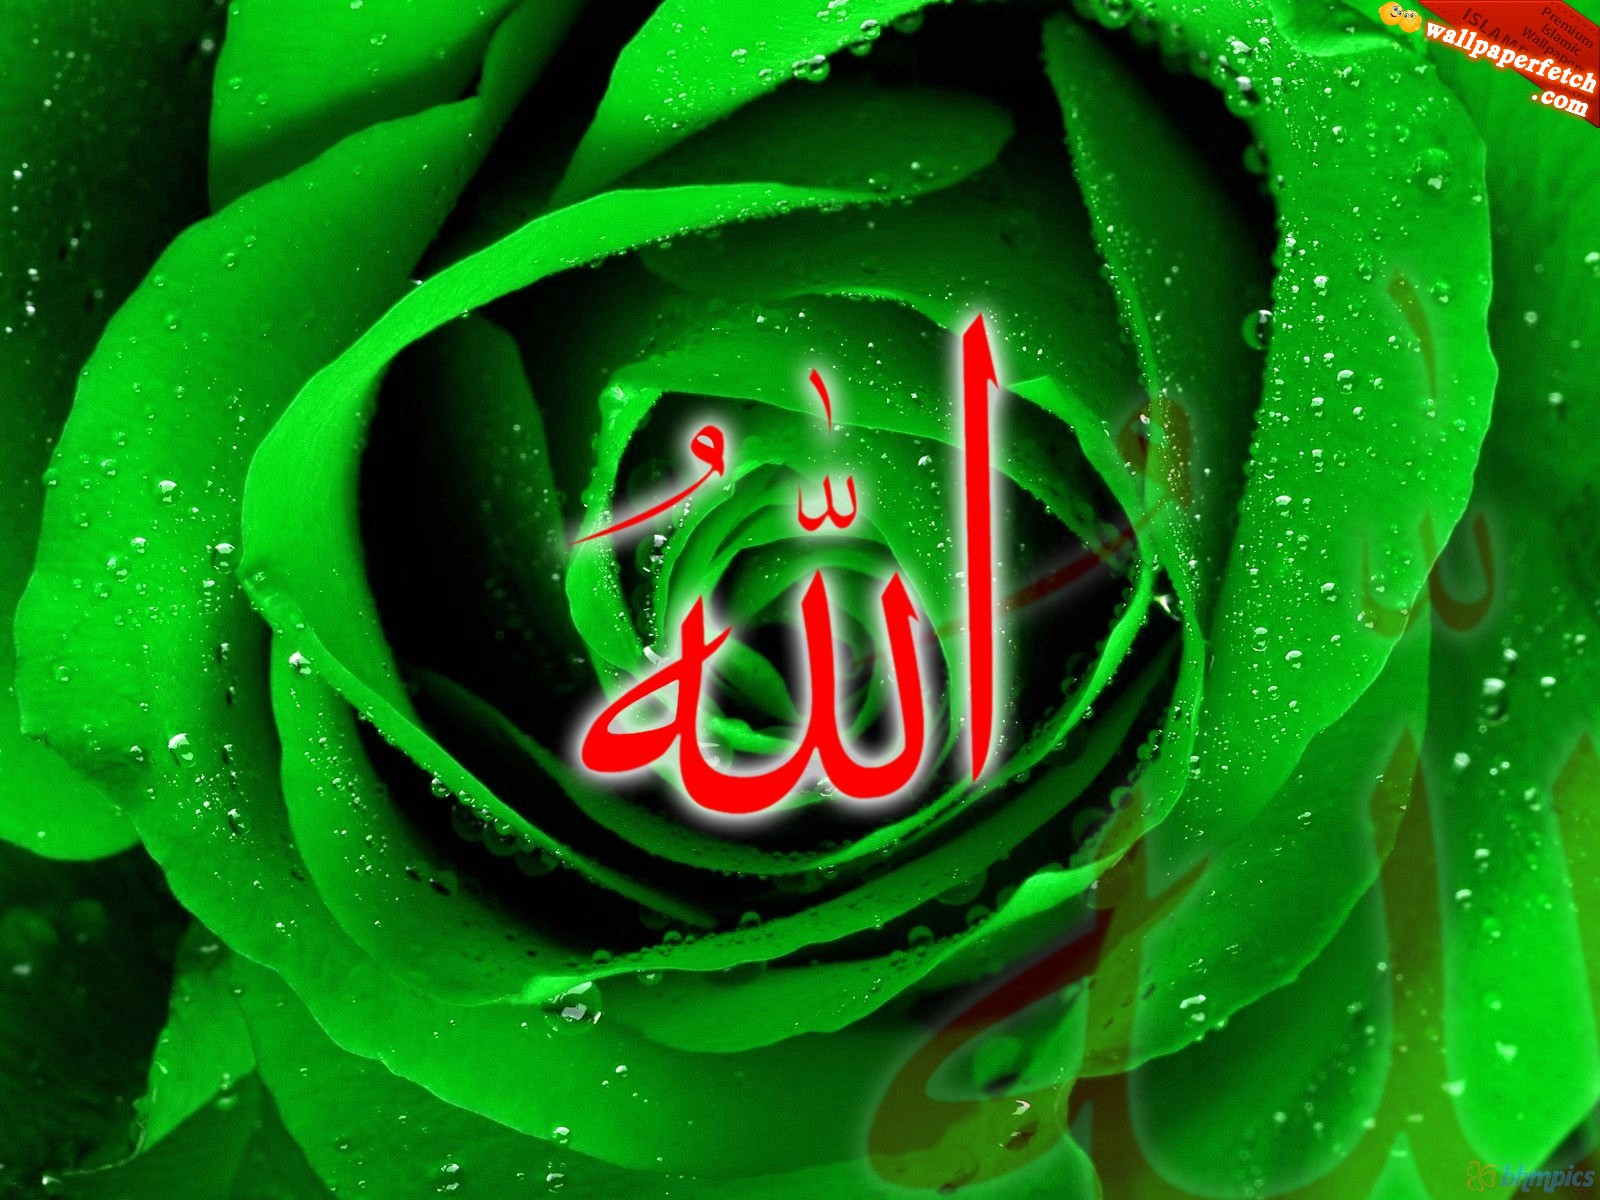 900 Wallpaper Allah Wale HD Gratis